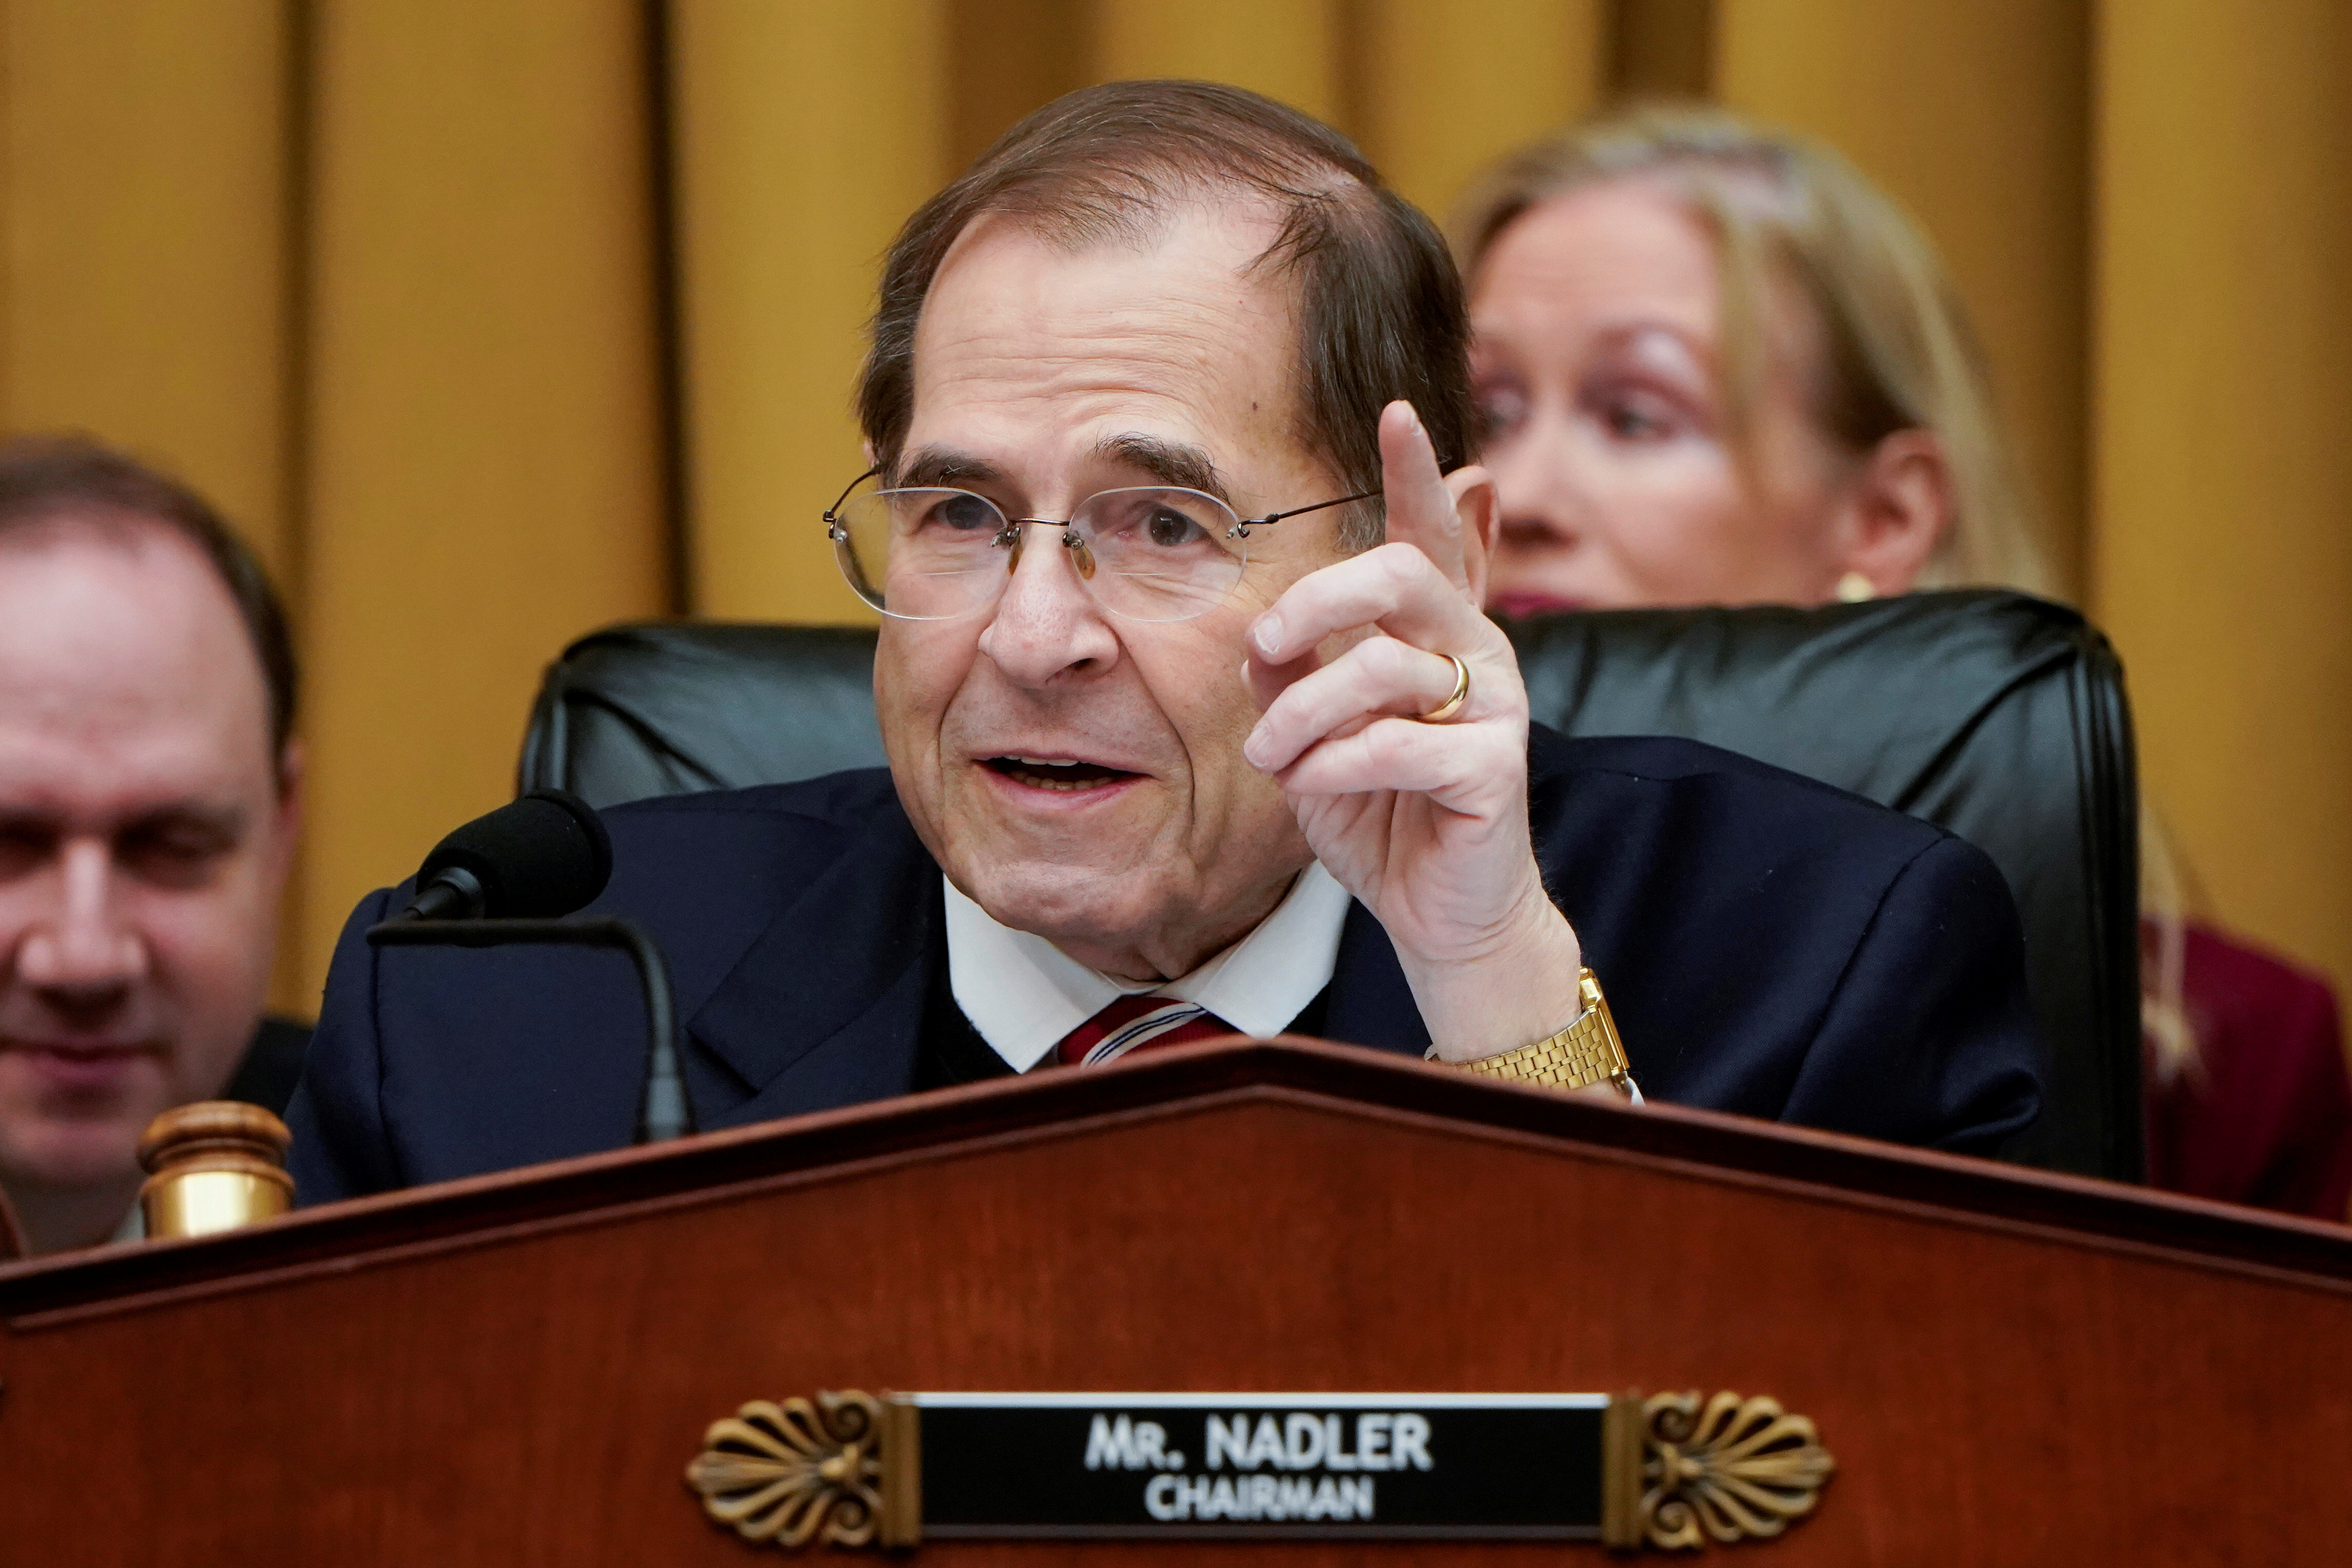 Chairman of the House Judiciary Committee Jerrold Nadler speaks in Washington, U.S., March 26, 2019. REUTERS/Joshua Roberts/File Photo